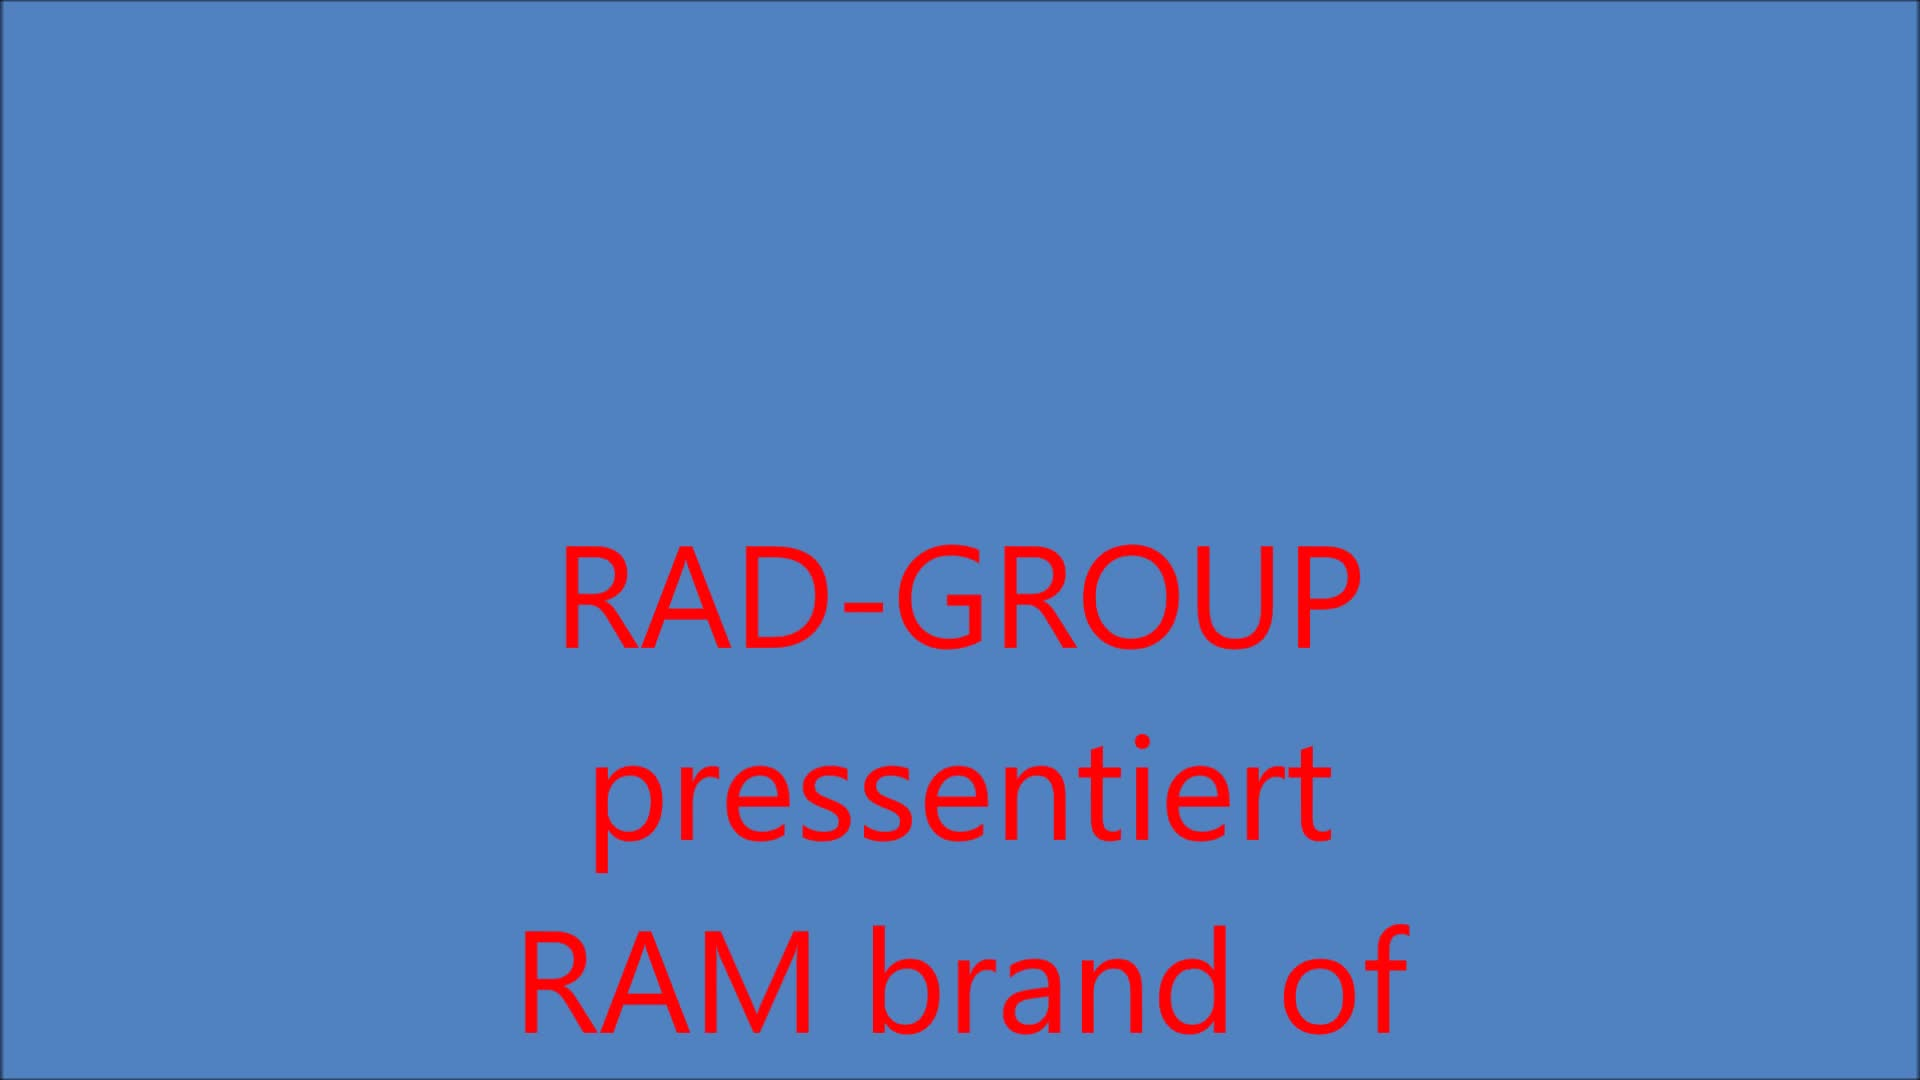 Kurzfilm RAM brand of RAD-GROUP